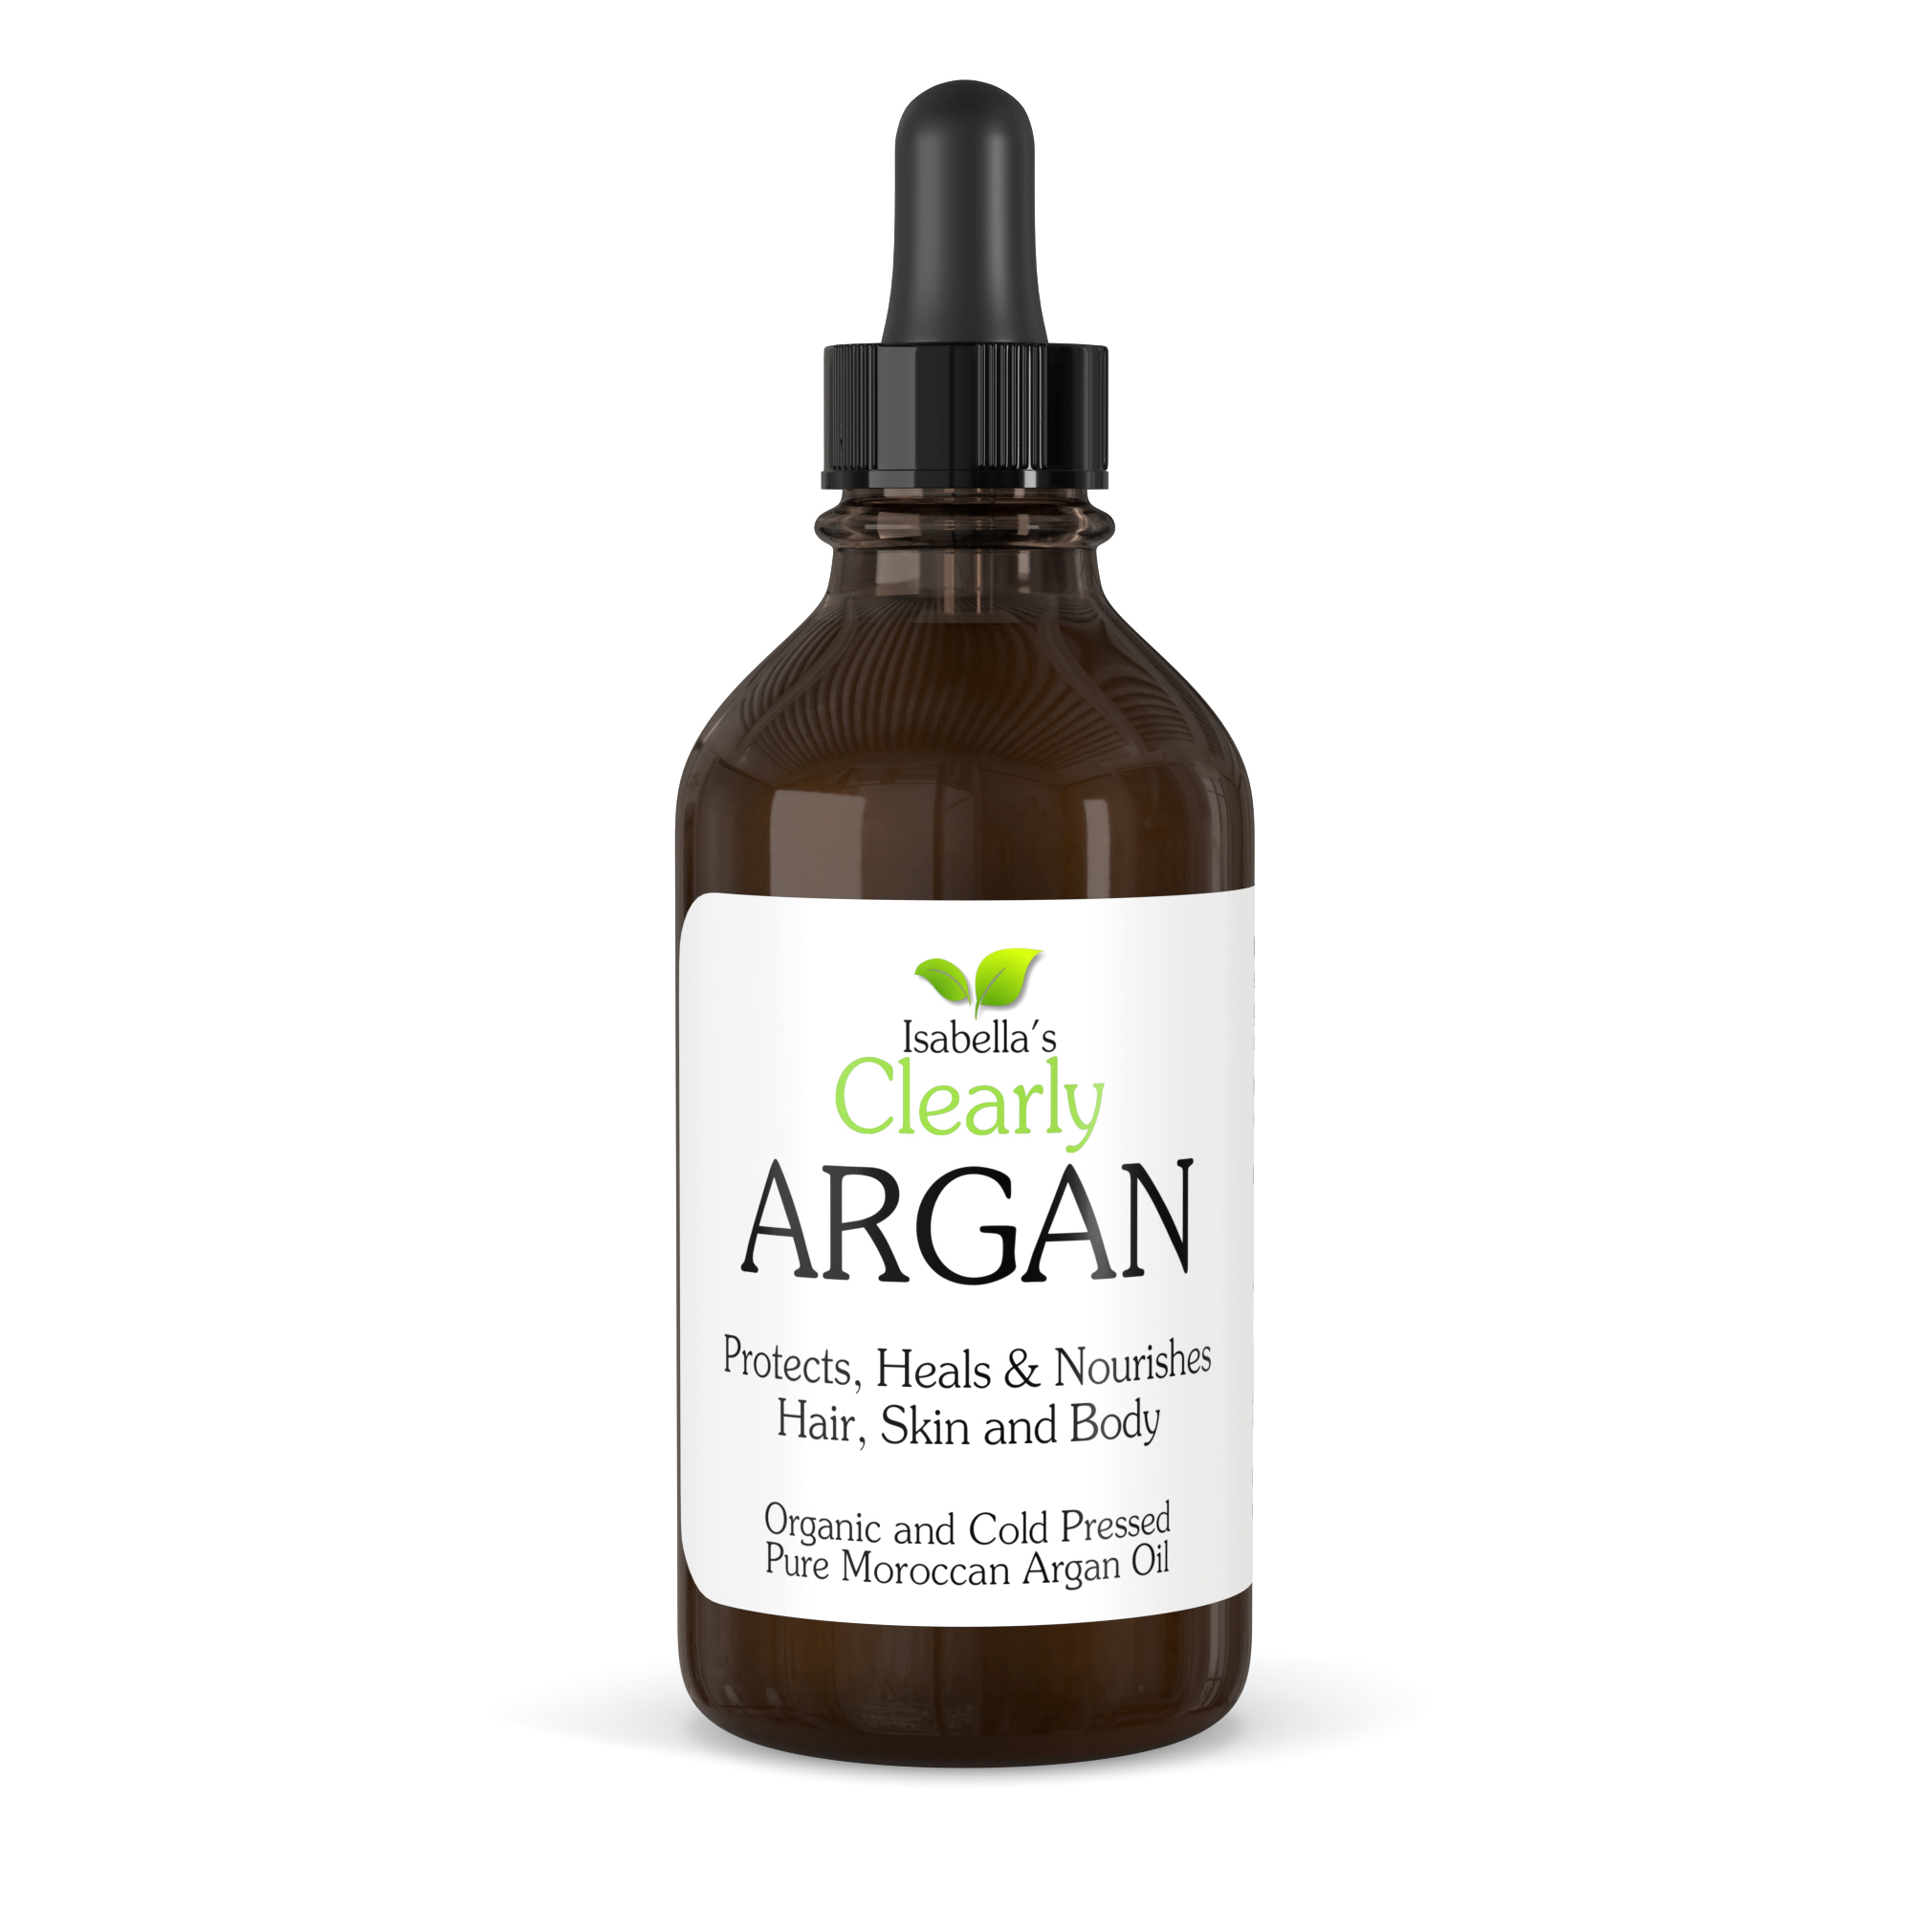 Clearly ARGAN, Organic Cold Pressed Moroccan Argan Oil